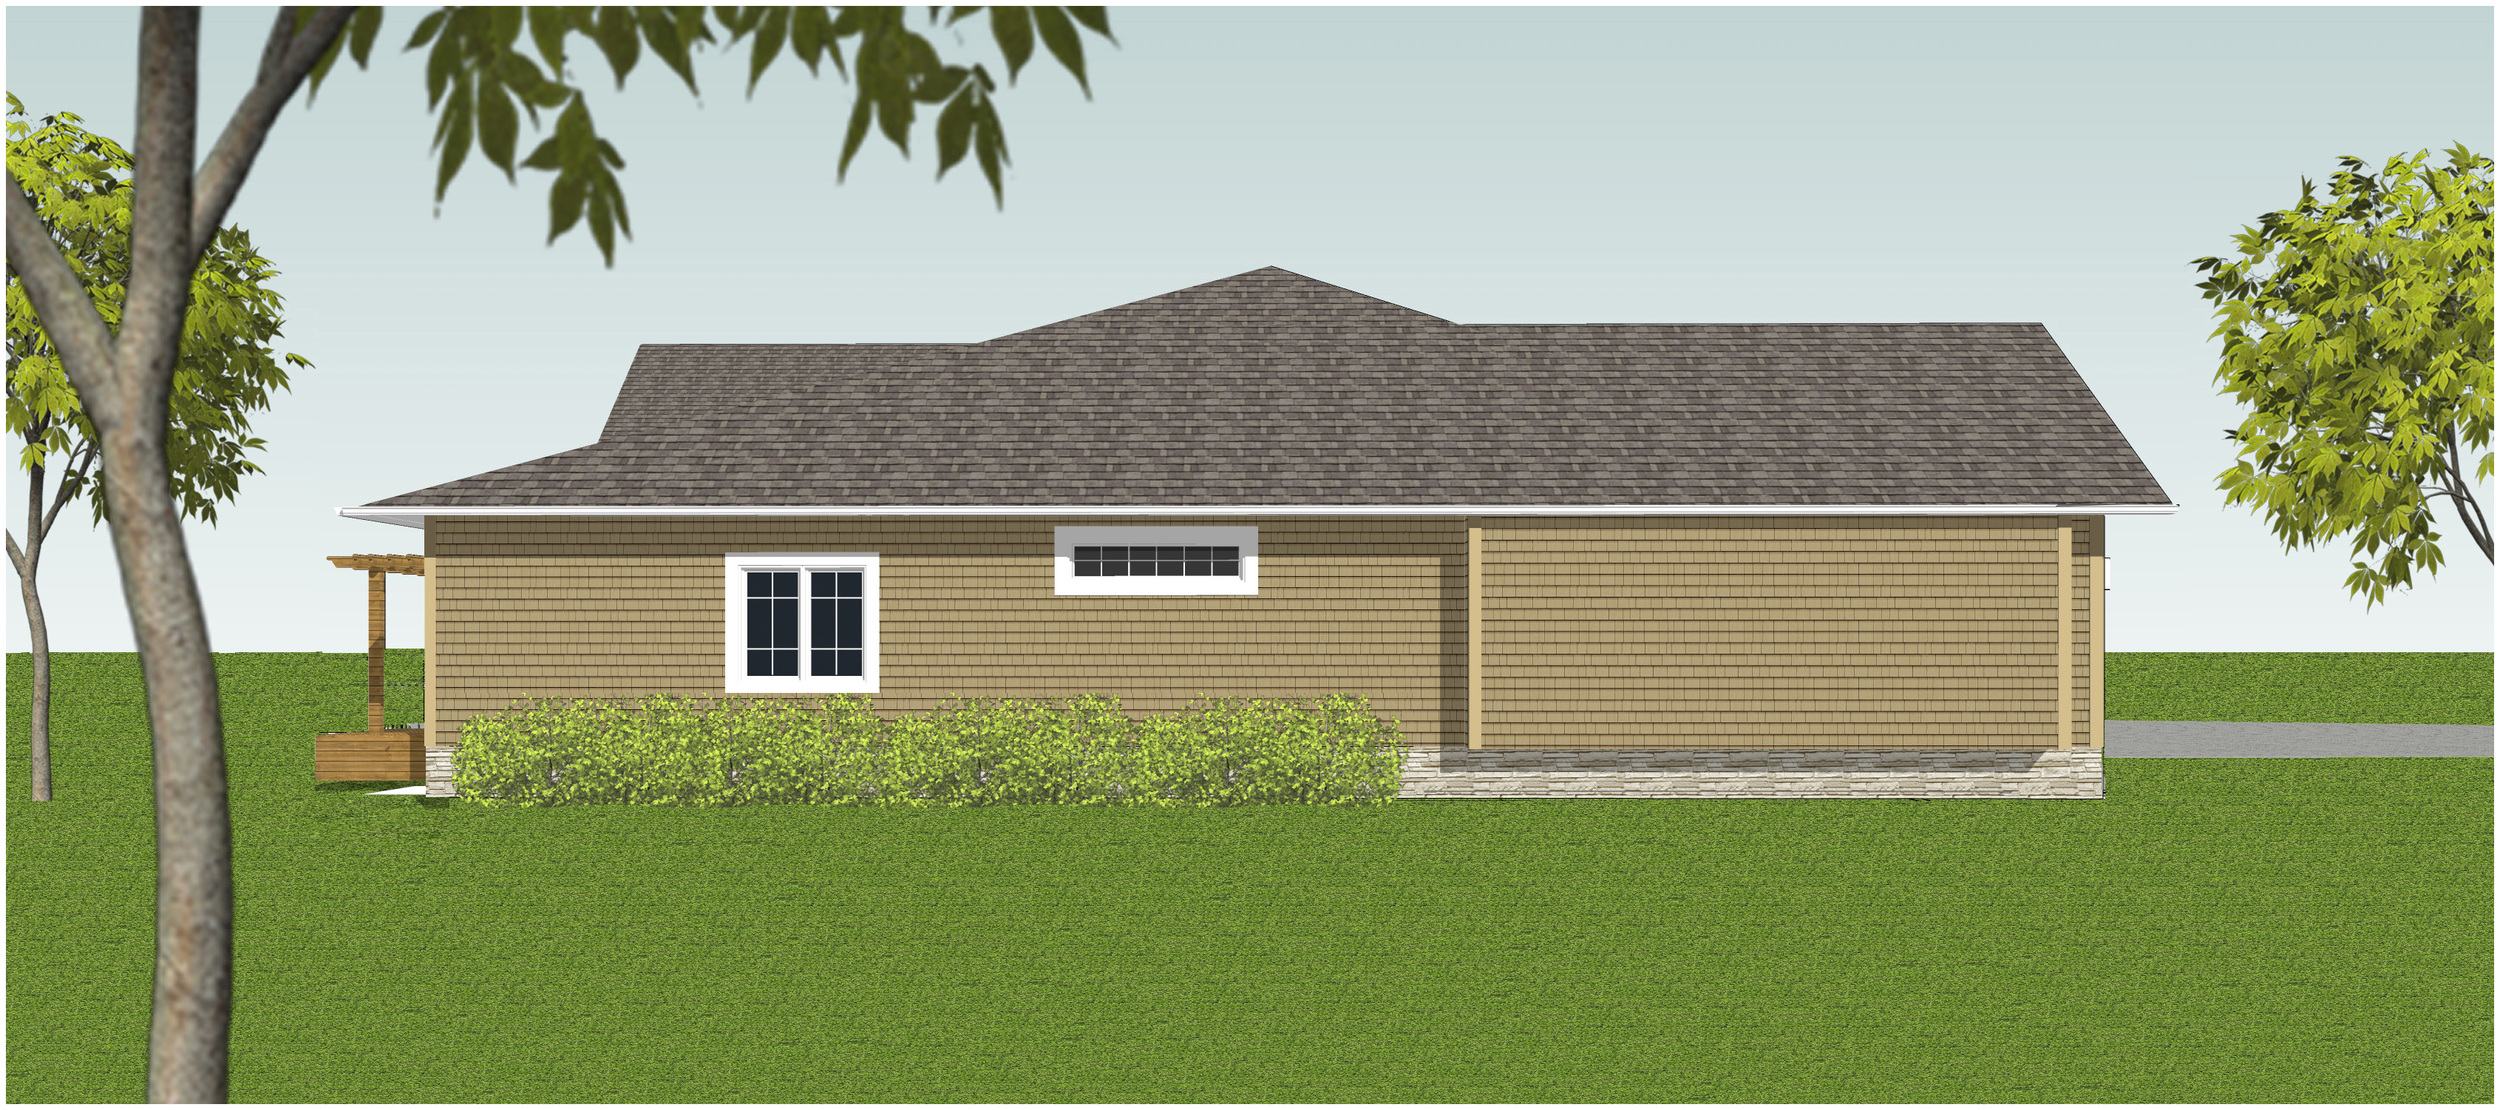 Meighan-Estates_1800_Side-Elevation_FINAL_o.jpg